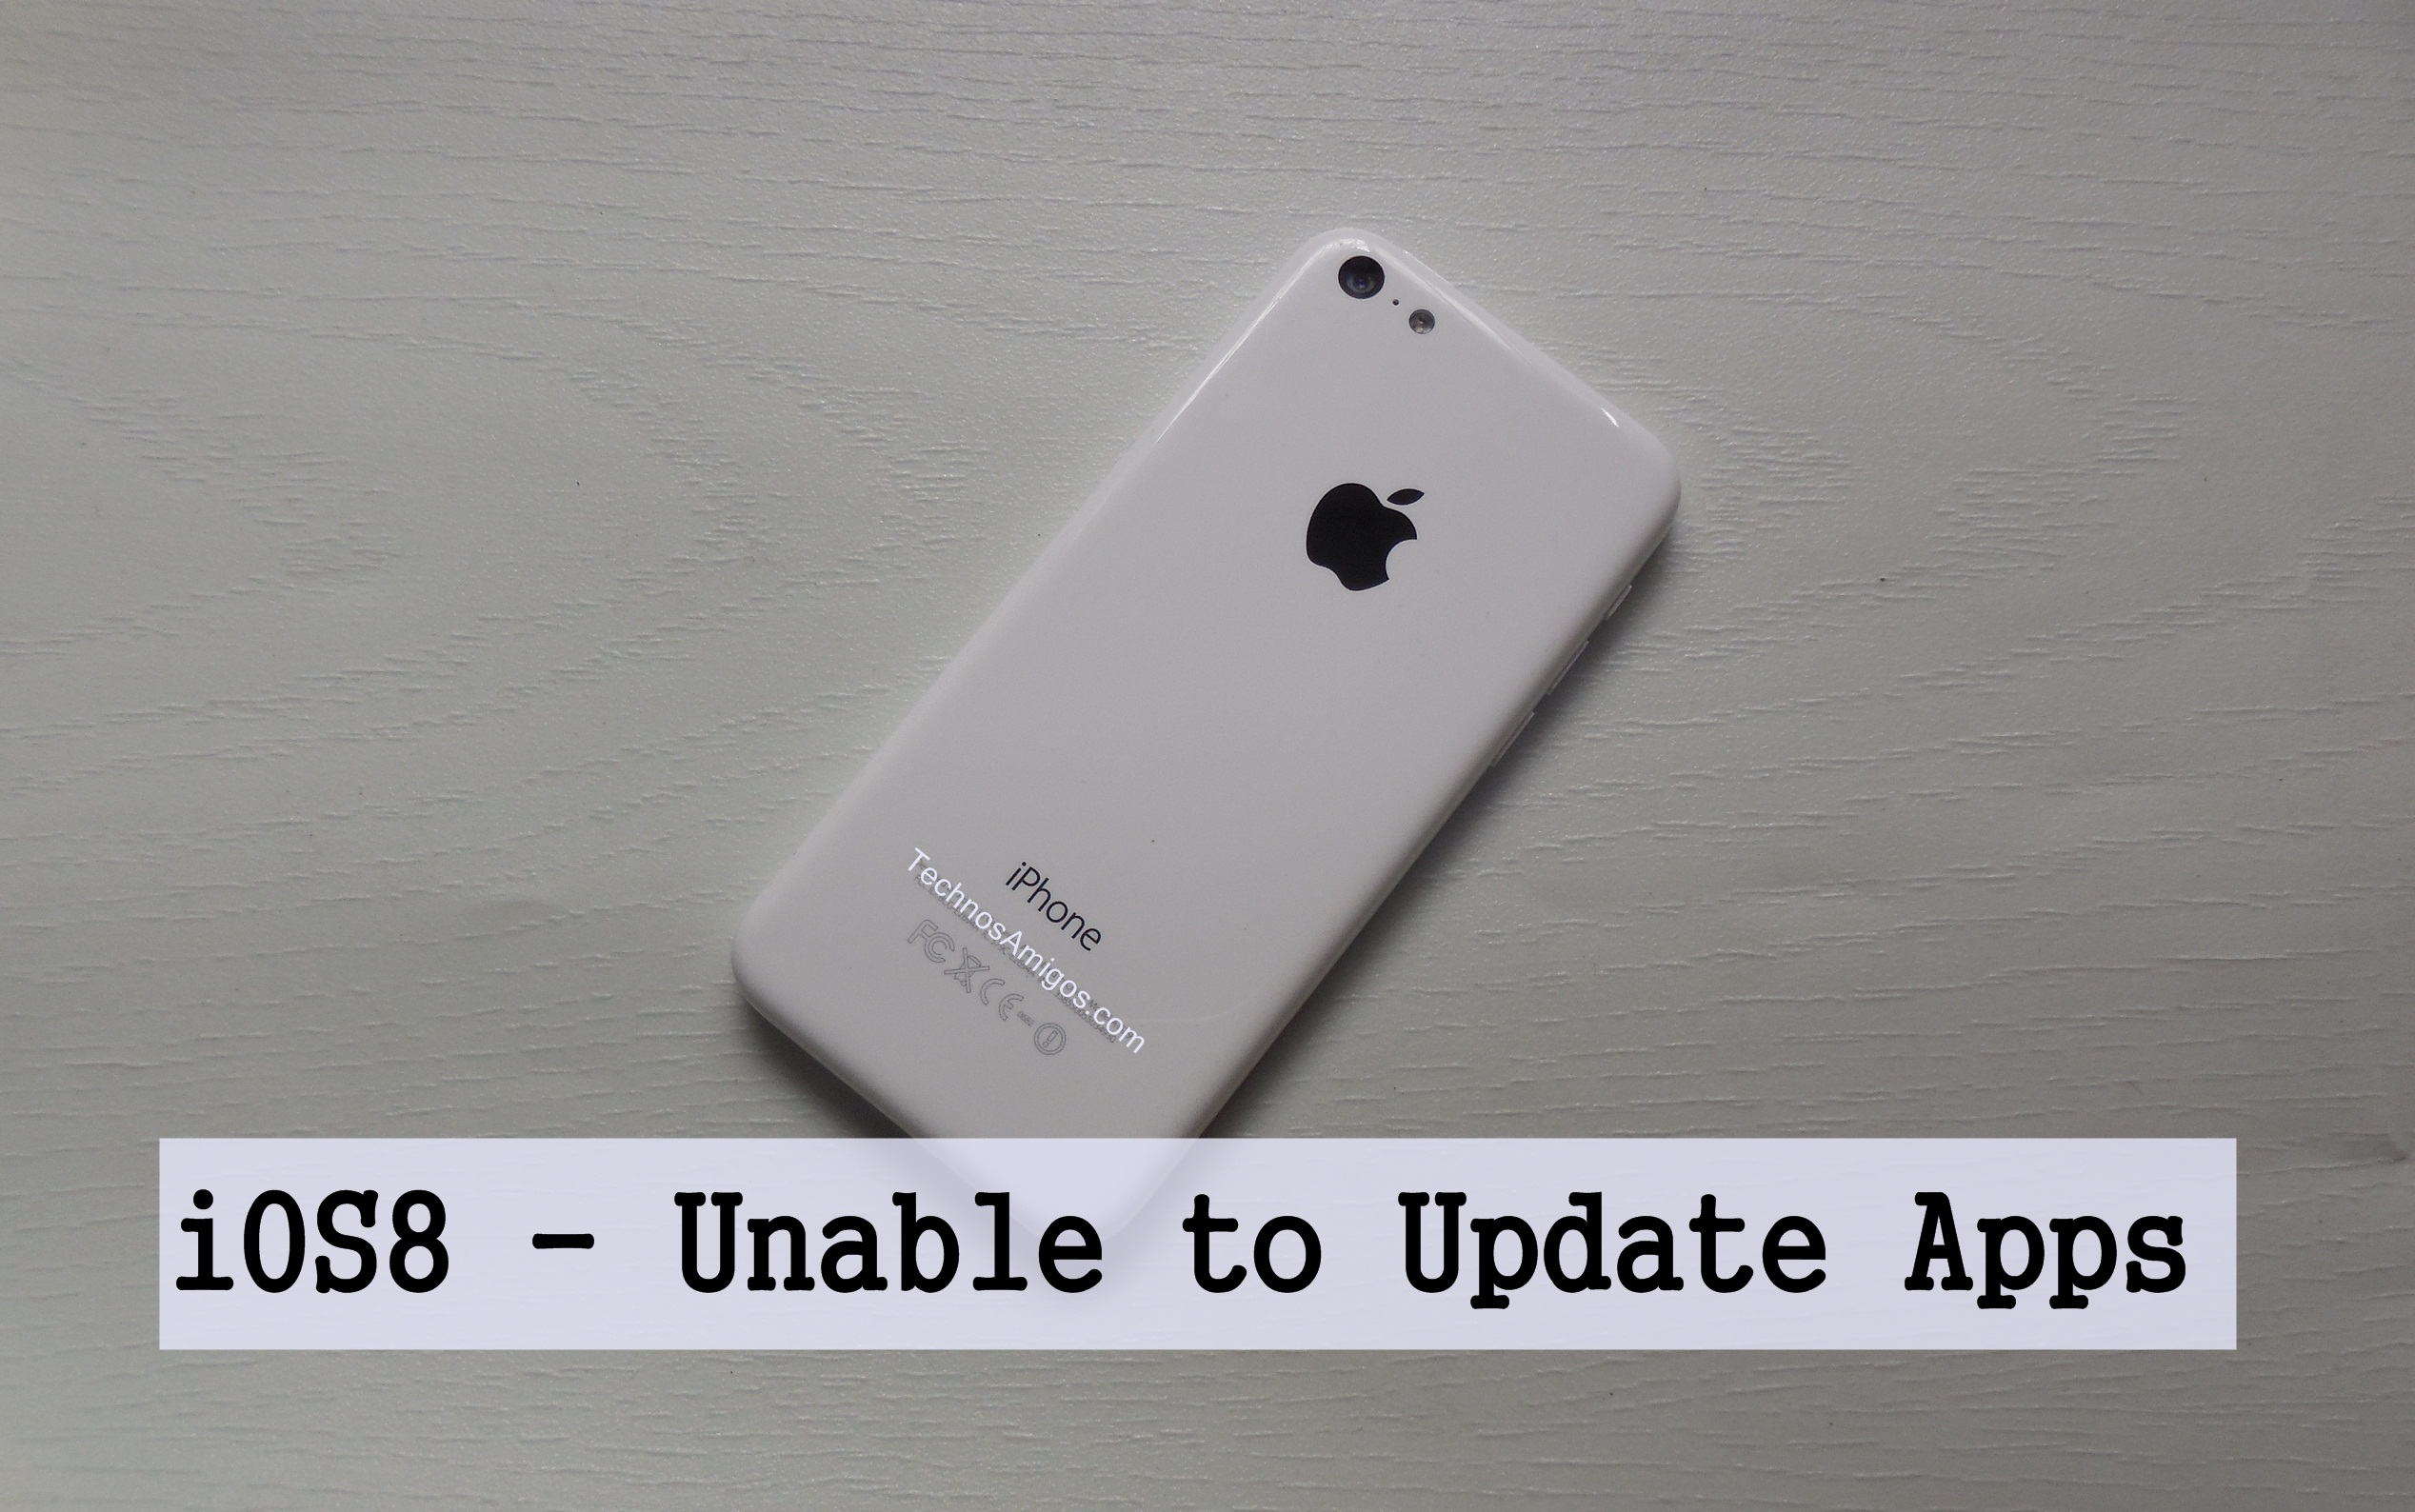 iPhone Unable to Update Apps